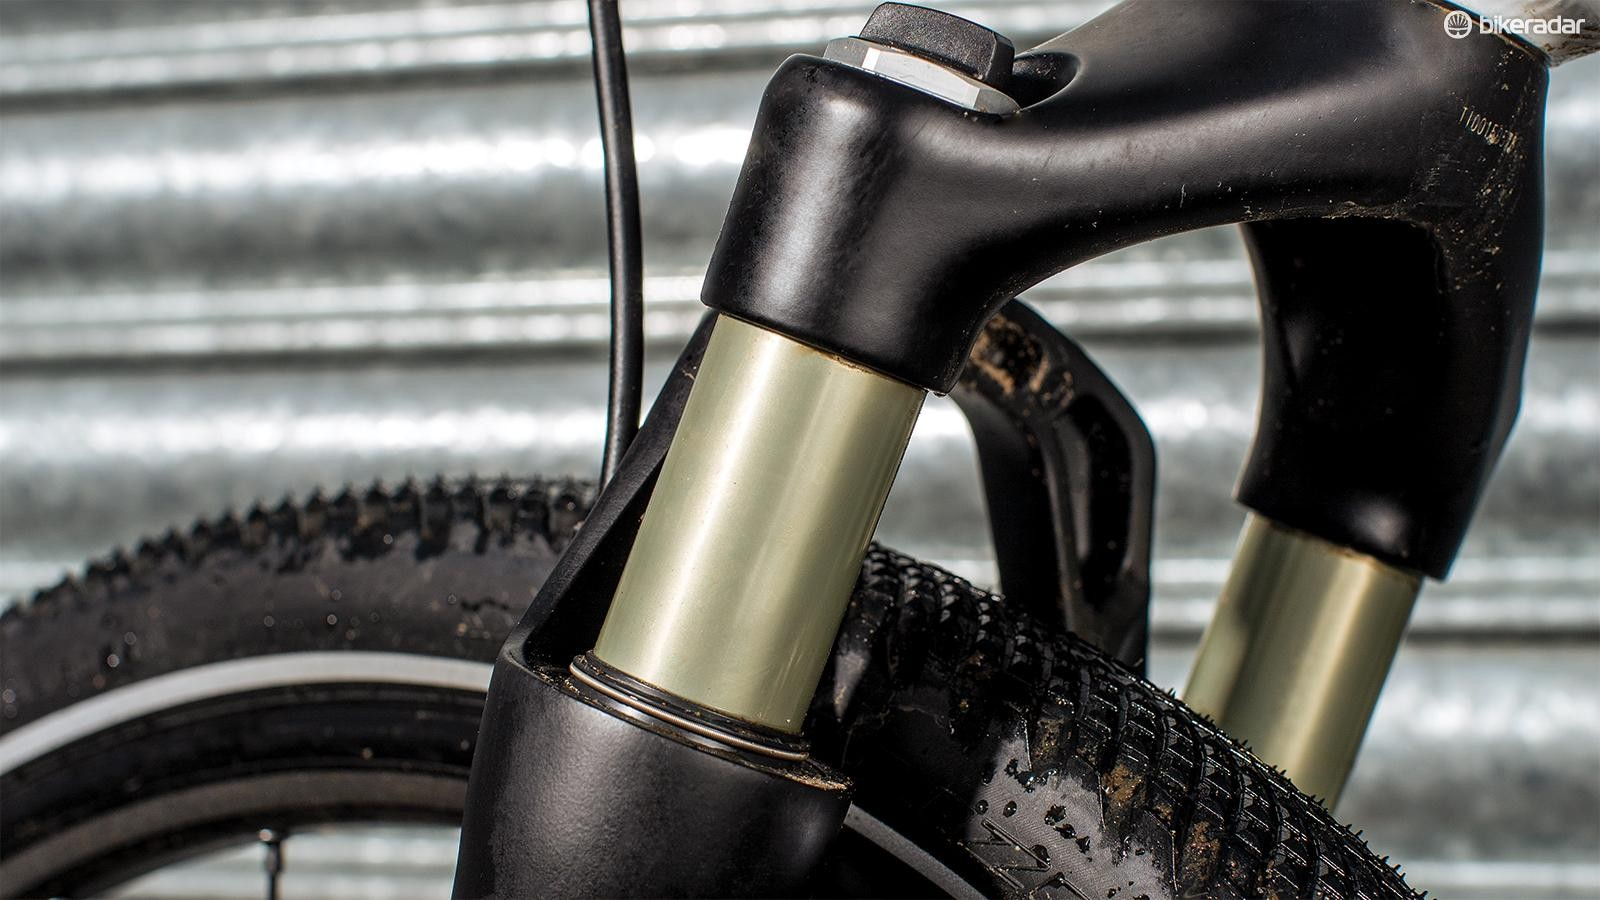 Big tyres and a suspension fork take the sting out of the rougher roads on your route